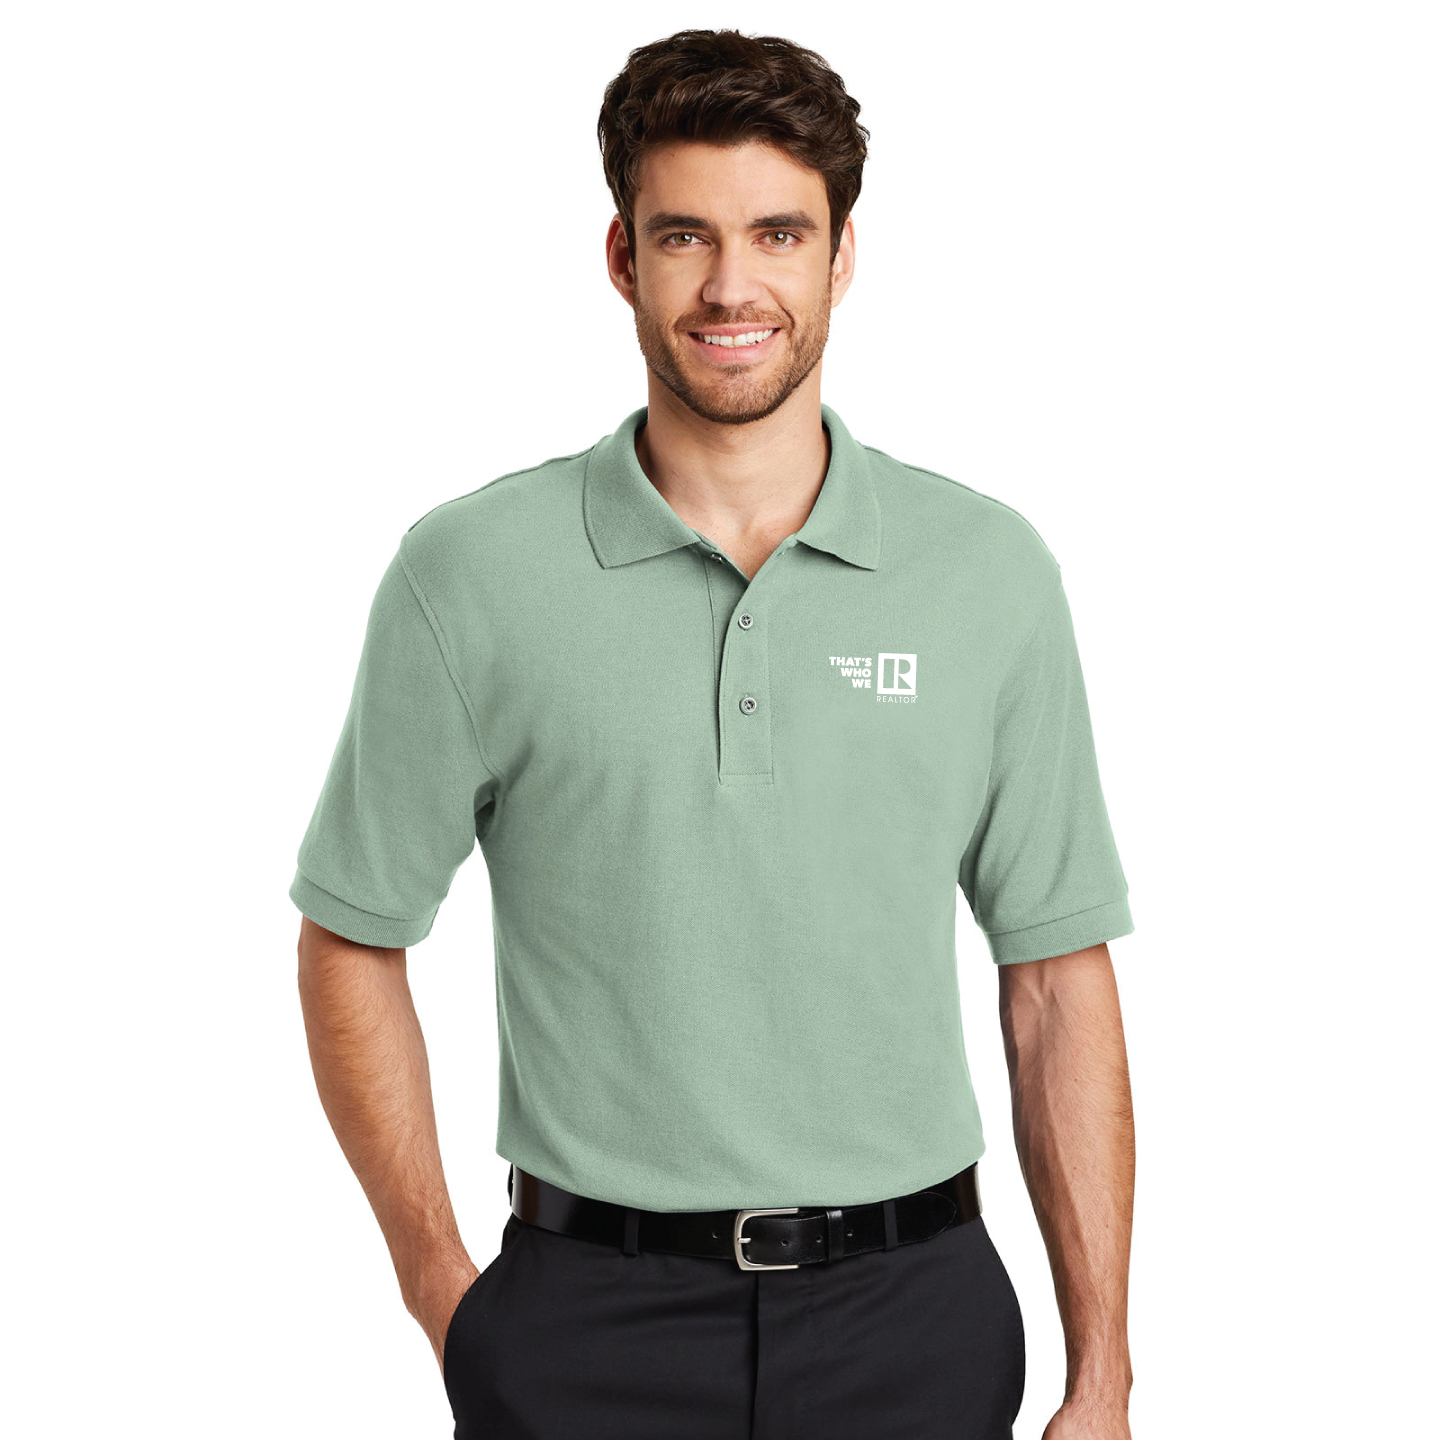 """That's Who We R"" Mens Pique Polo Shirt twwr,ThatsWhoWeR,That's,TWWR,ThatWho,That'sWho,Twwr,Thats,Whos,We,Ares,Twwr,Thats,Whos,Ares,Golfs, Shirts, Collared, Polos, Plackets"